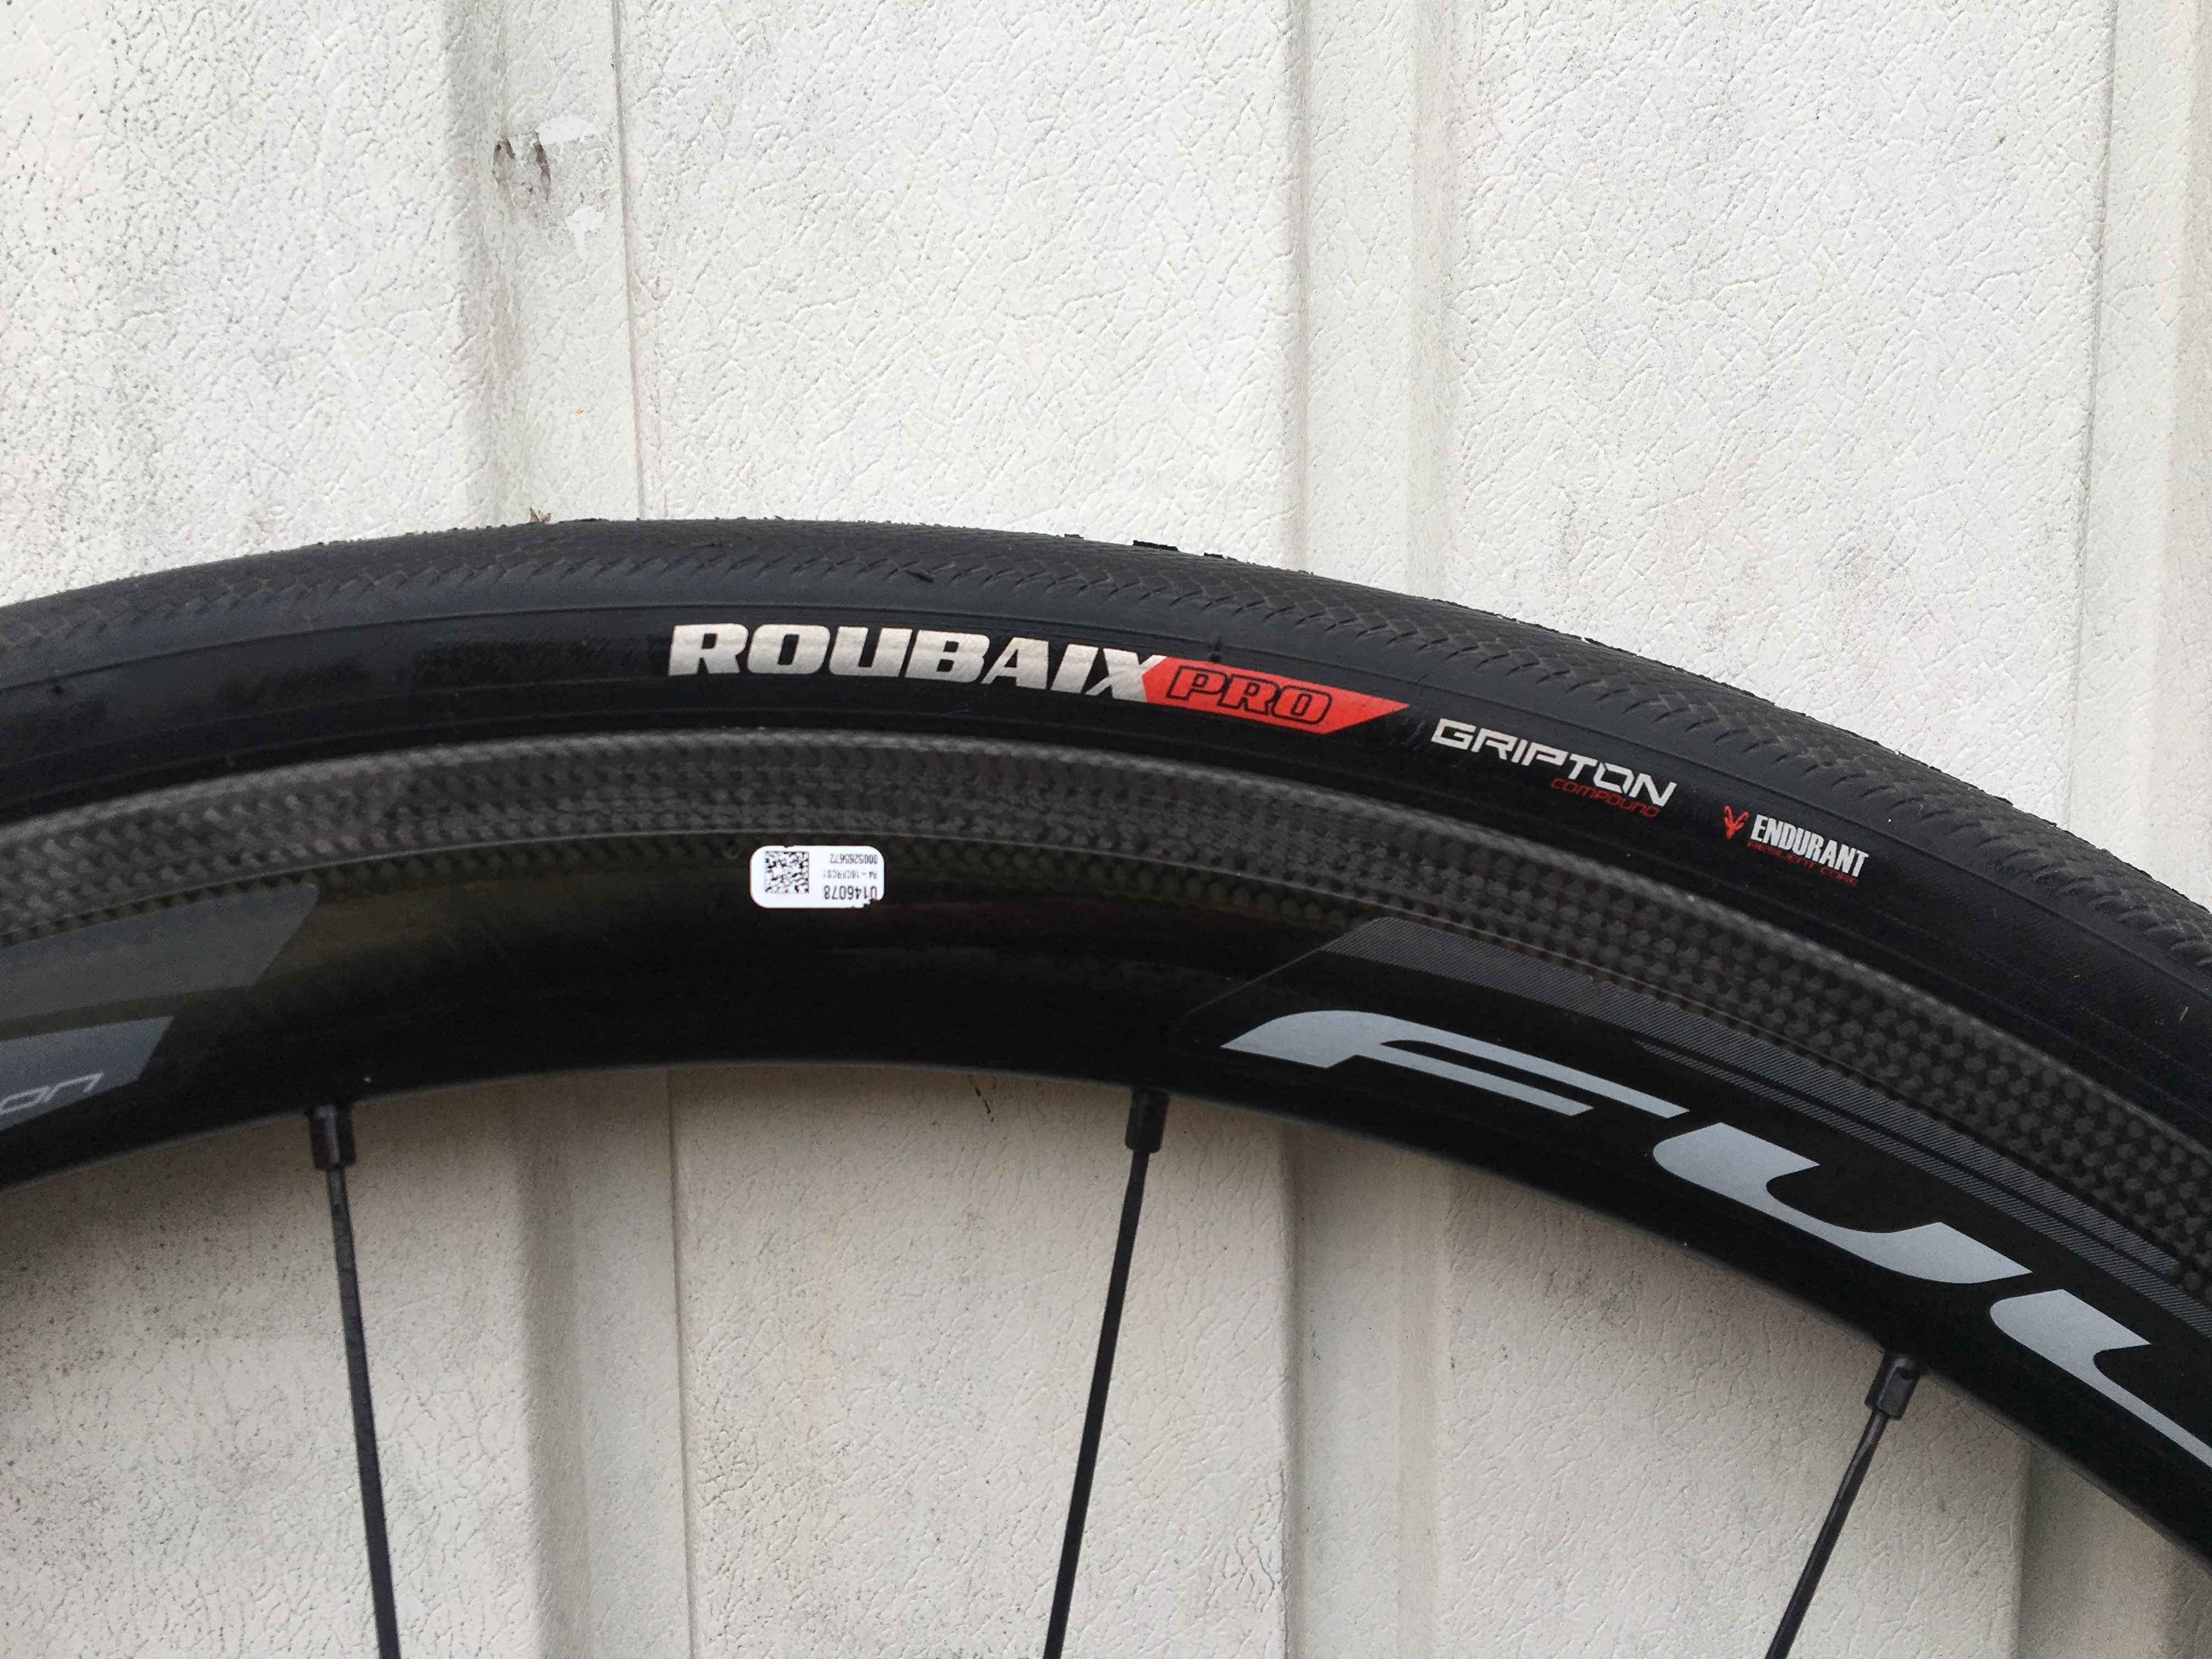 Specialized Roubaix Pro tyre review